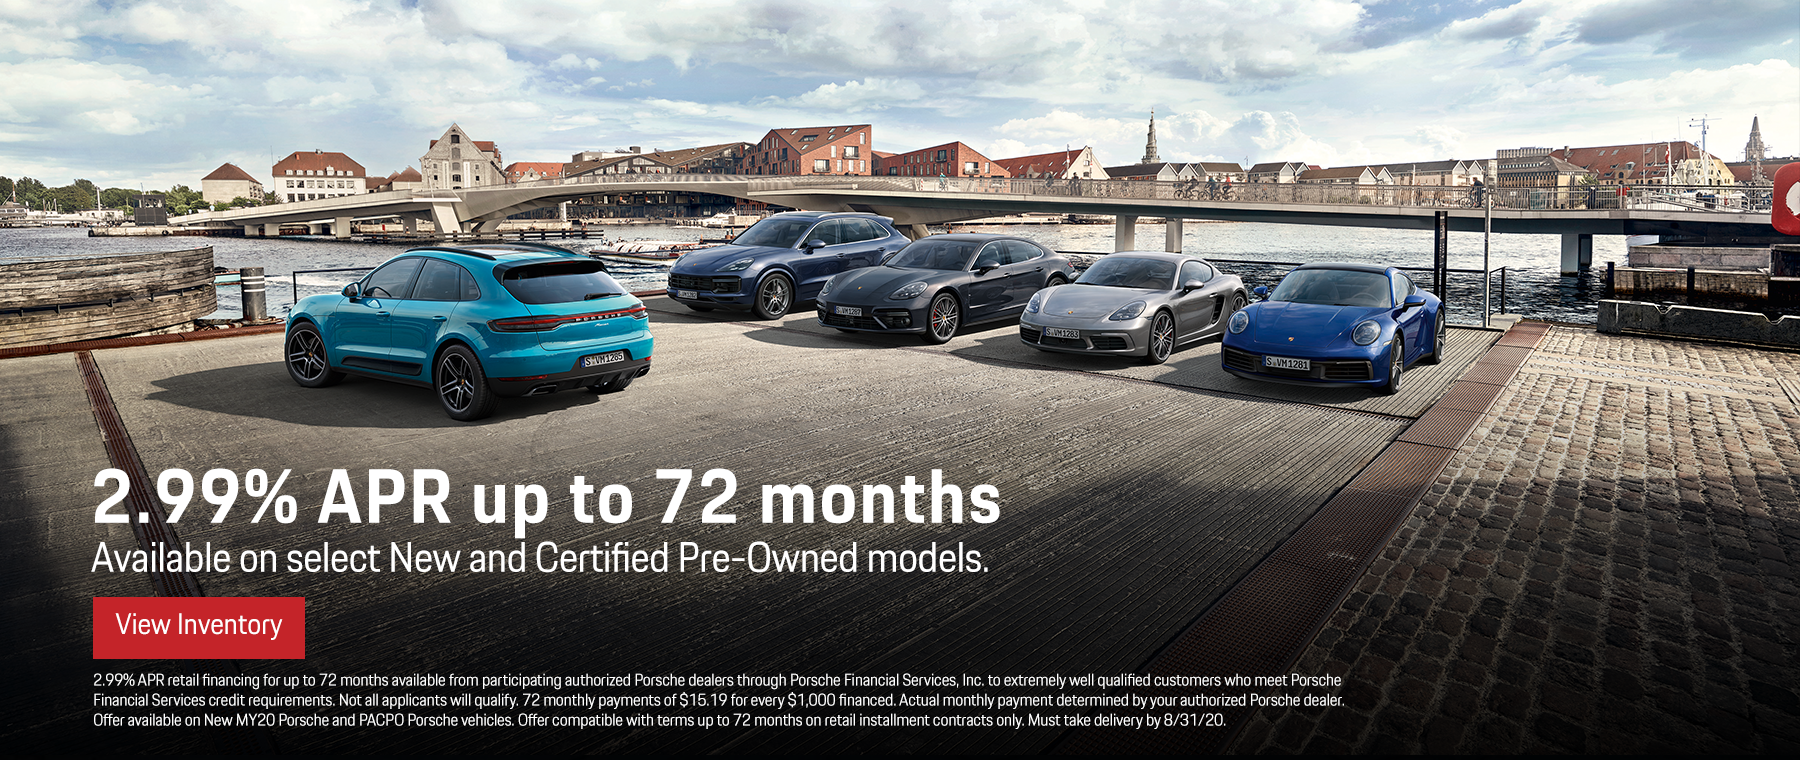 Porsche 2.99% APR for up to 72 months on select new and pre owned models